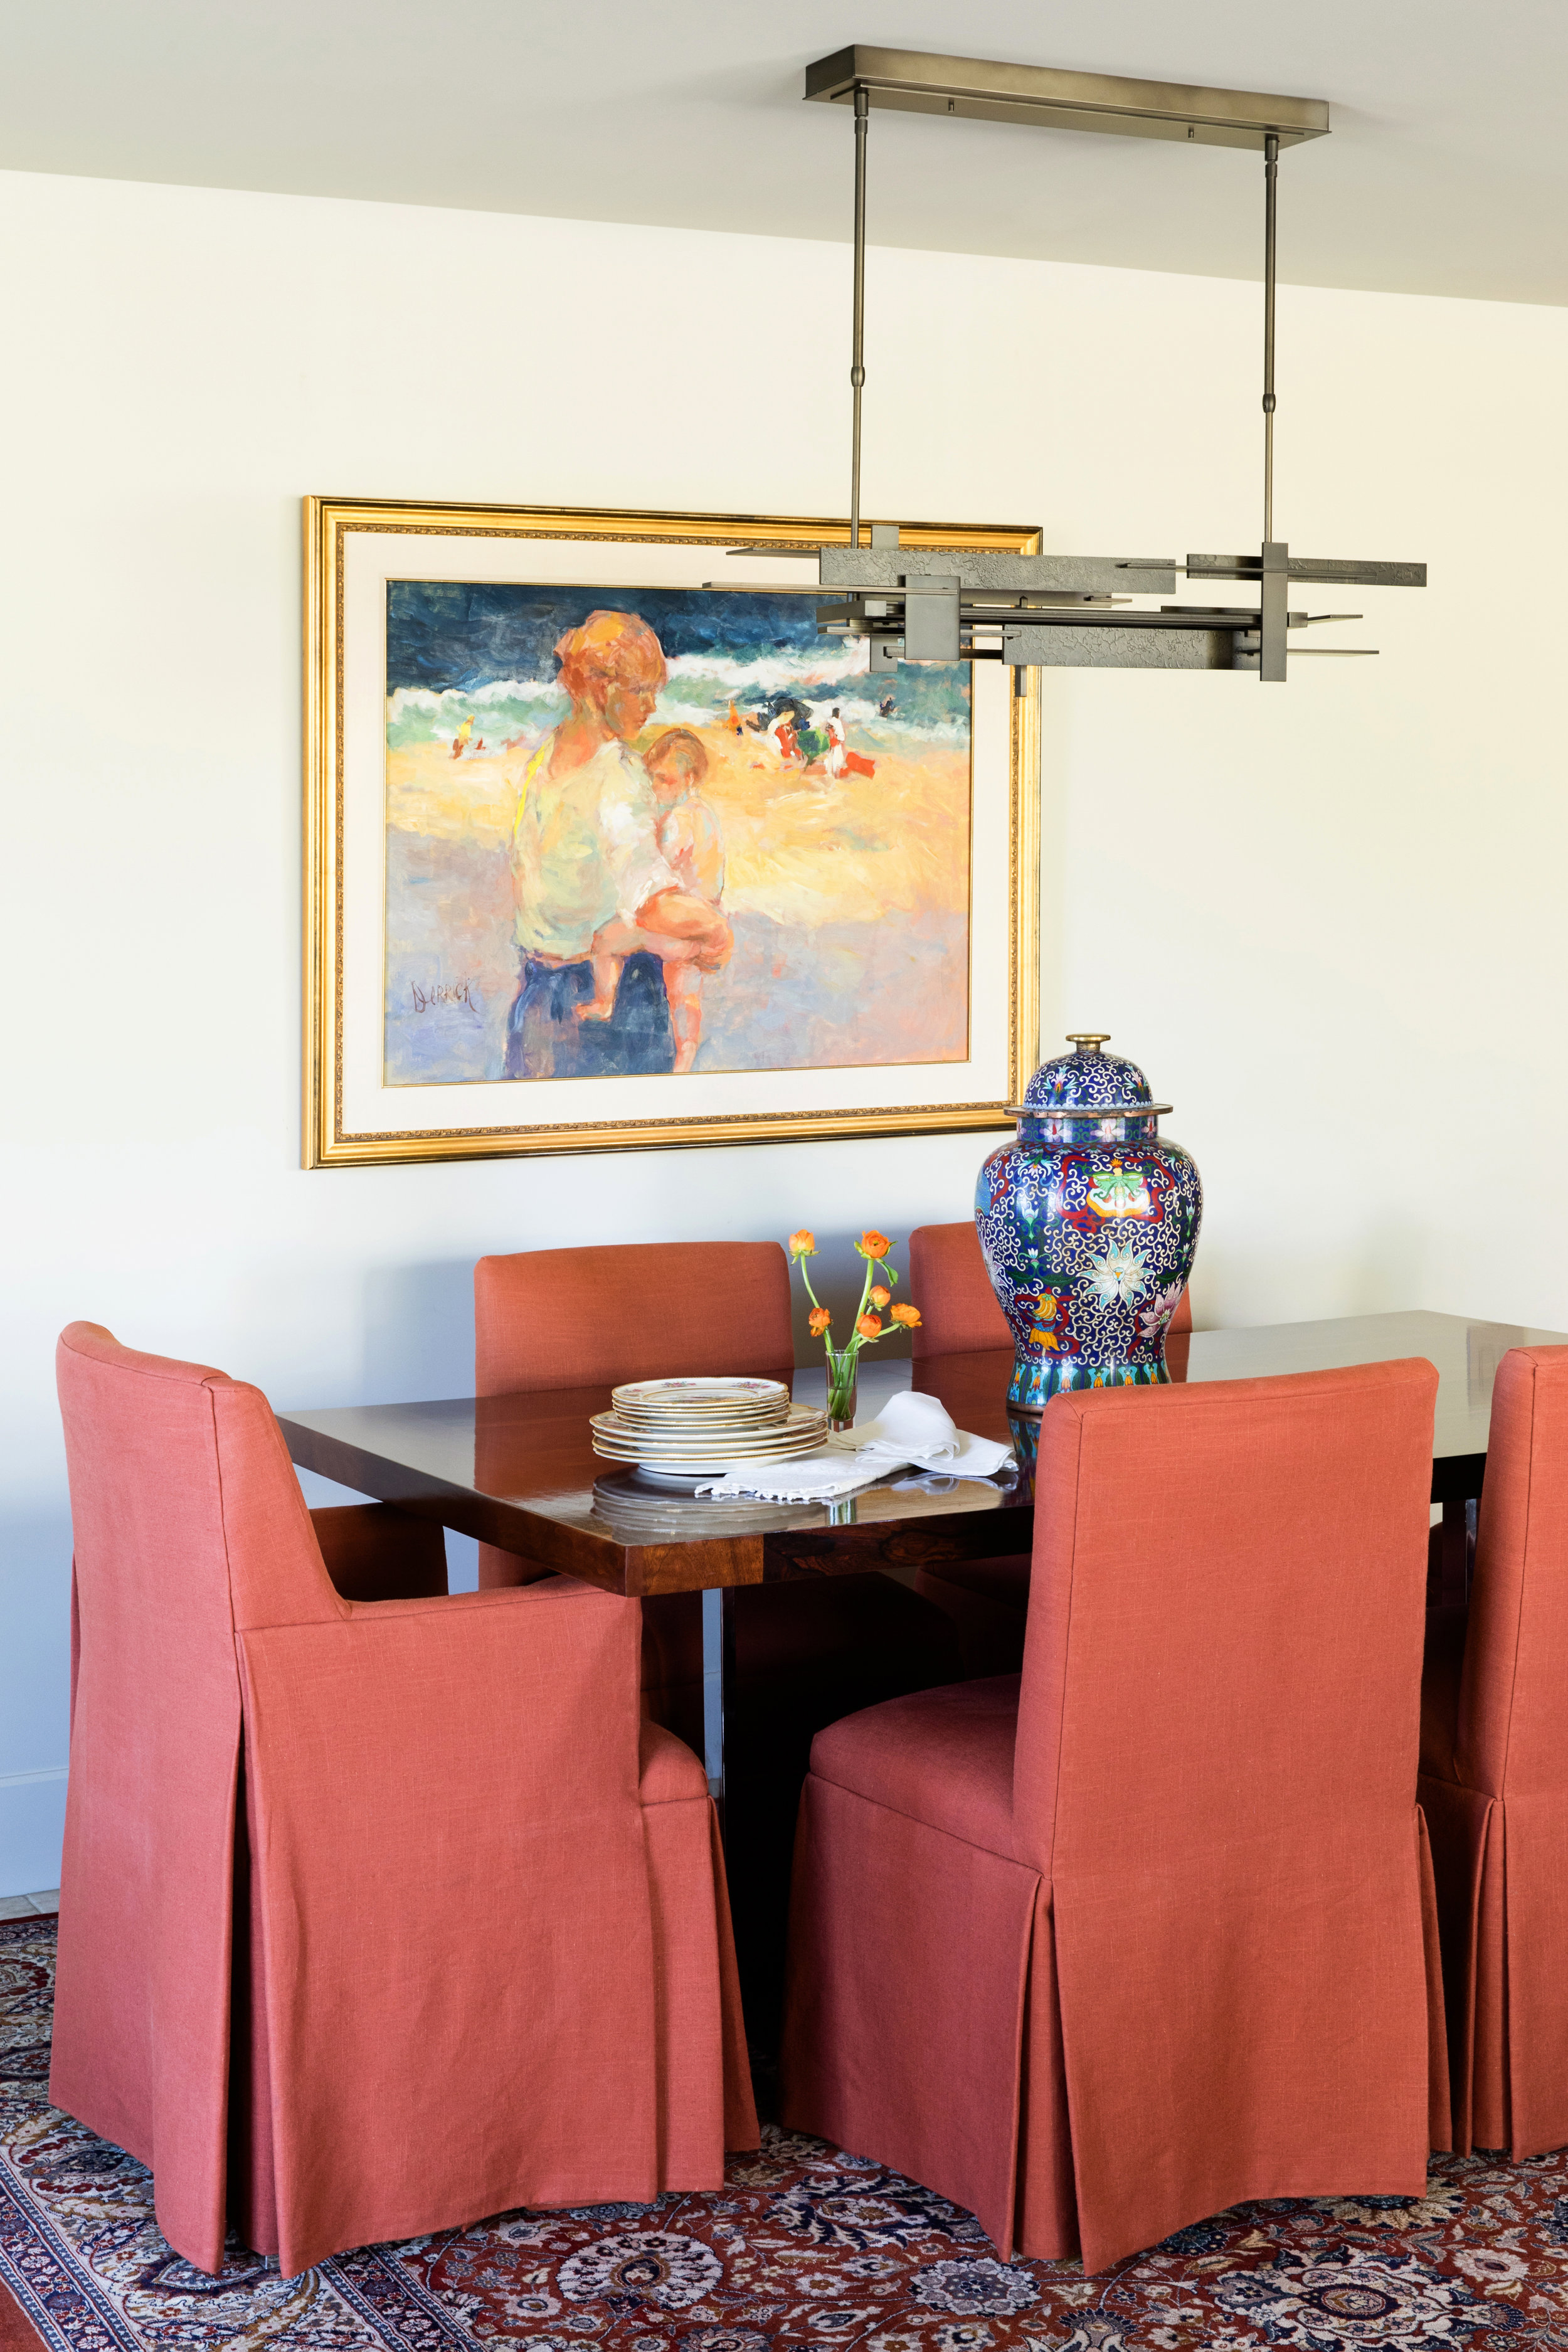 Traditional skirted chairs in persimmon skirts and a seaside painting by Sheryl Derrick bring color to the MCM rosewood dining table.